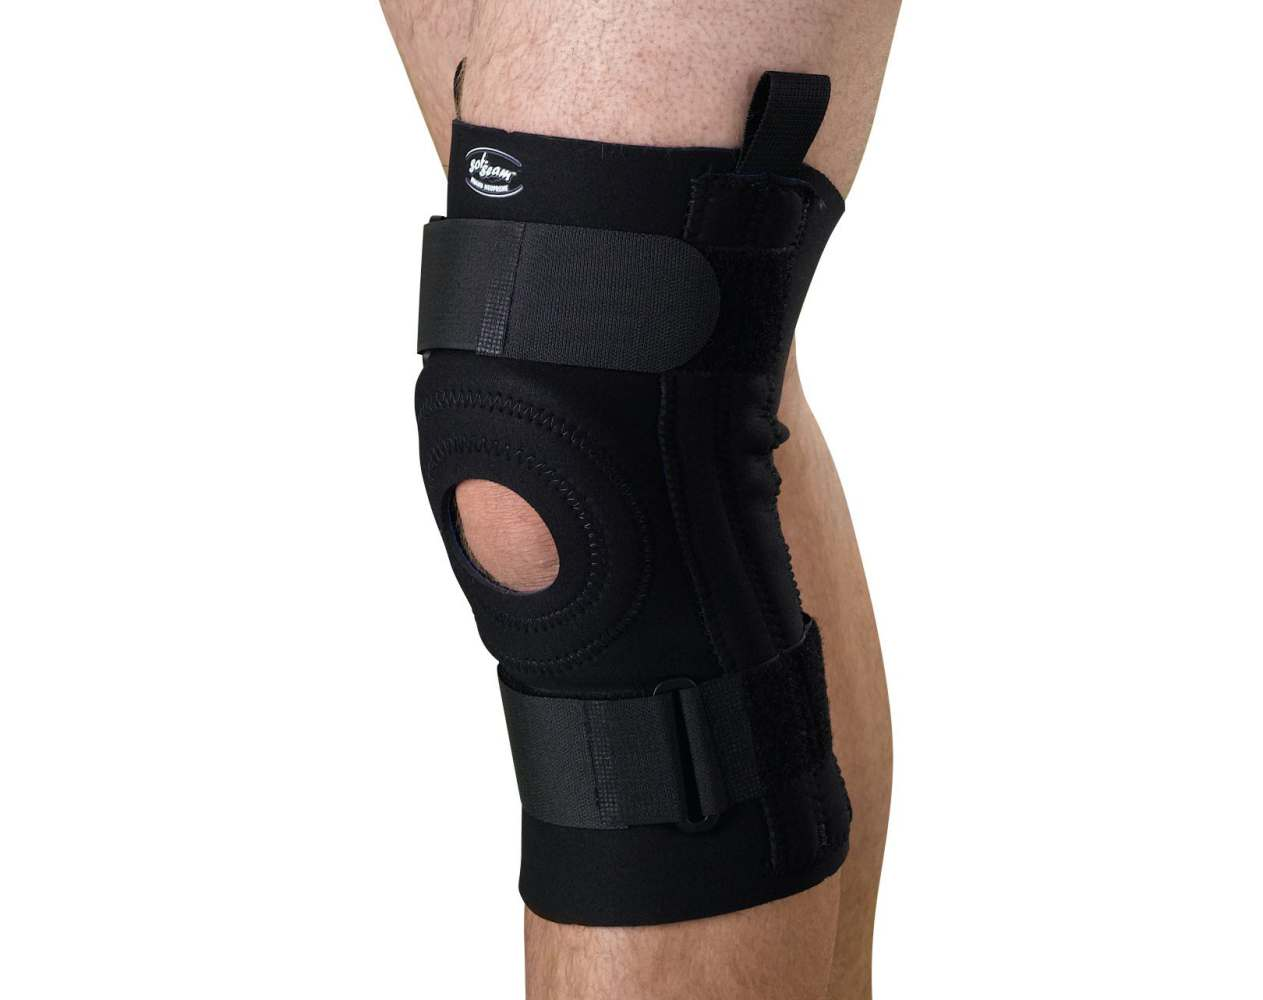 Medline Knee Supports with Removable U-Buttress - w/ U-Butress, Sm, Each - Model ORT23230S